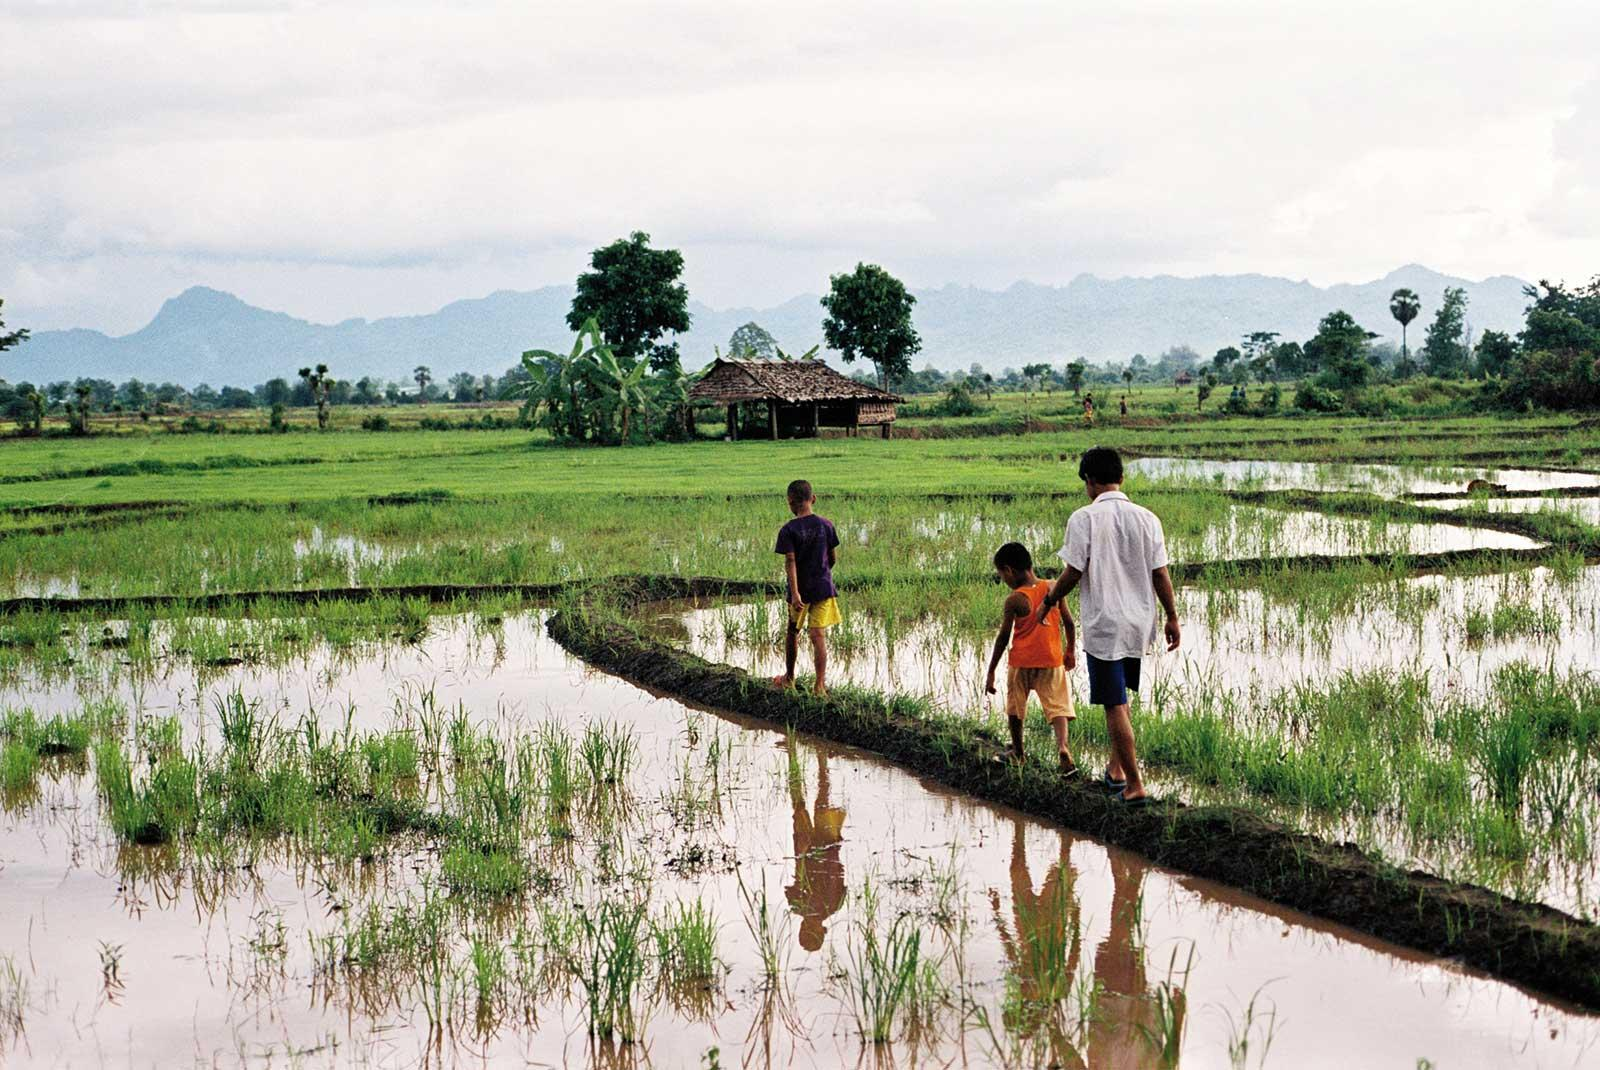 Kids walking across rice fields